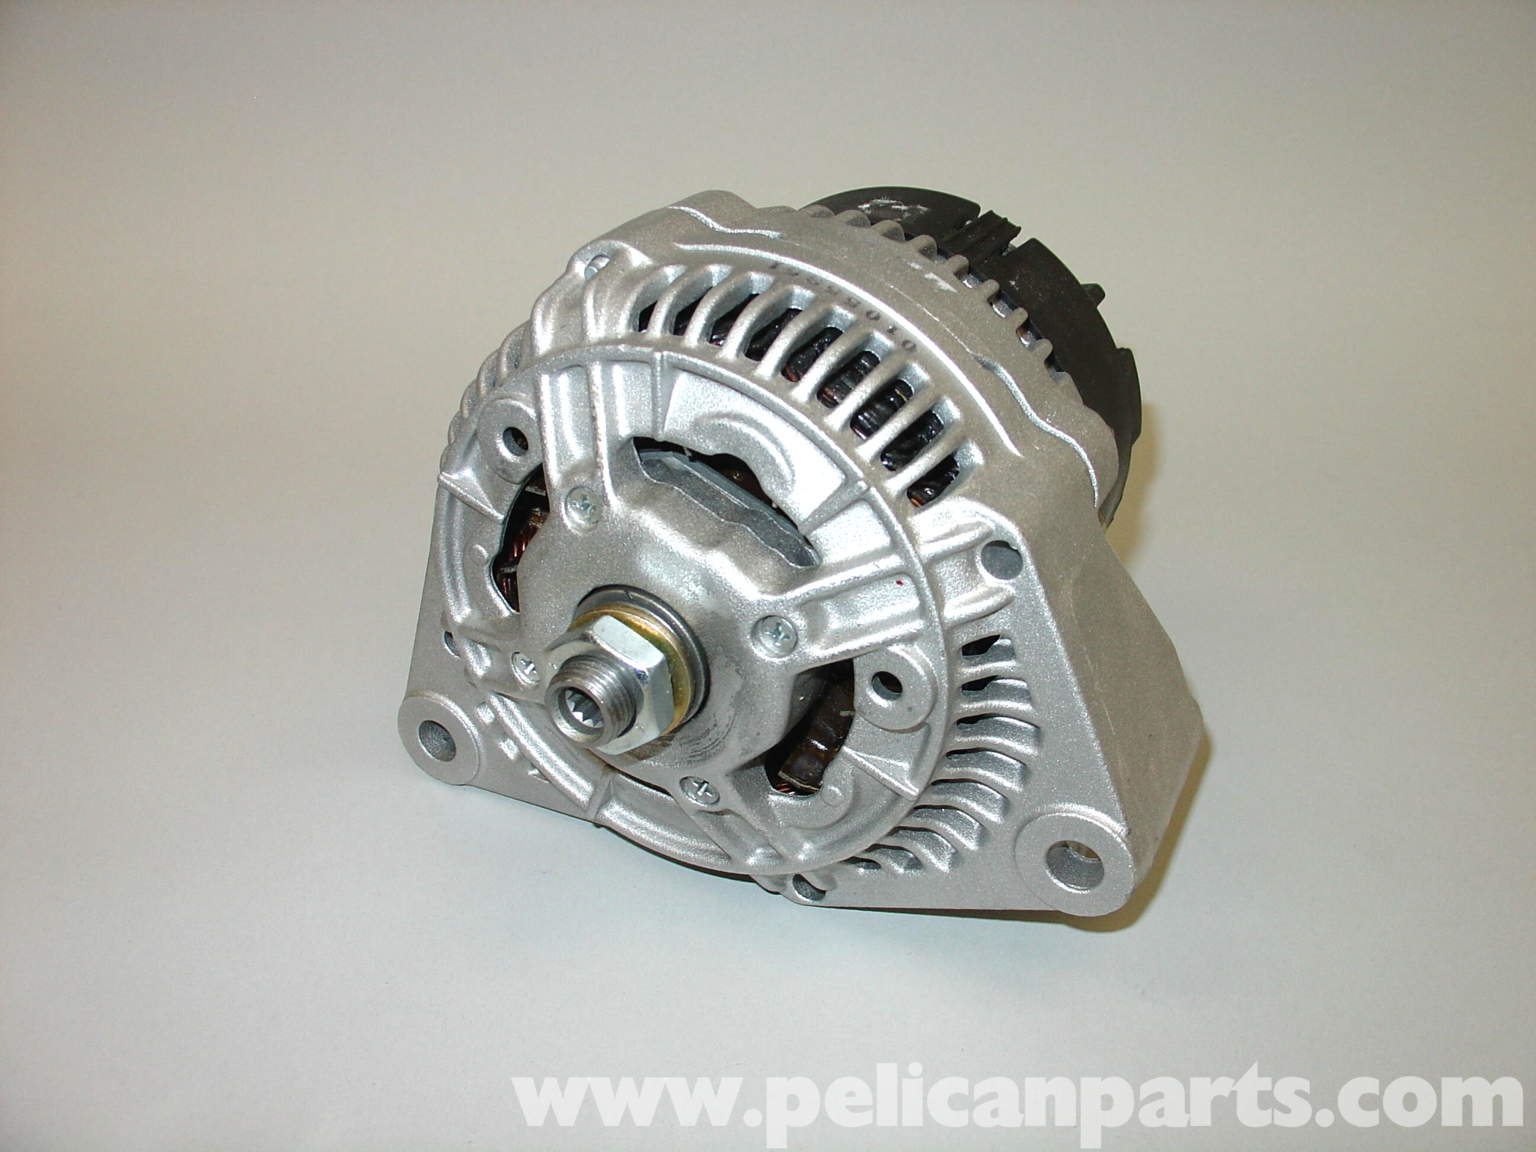 Mercedes benz w210 alternator replacement 1996 03 e320 for Mercedes benz alternator parts